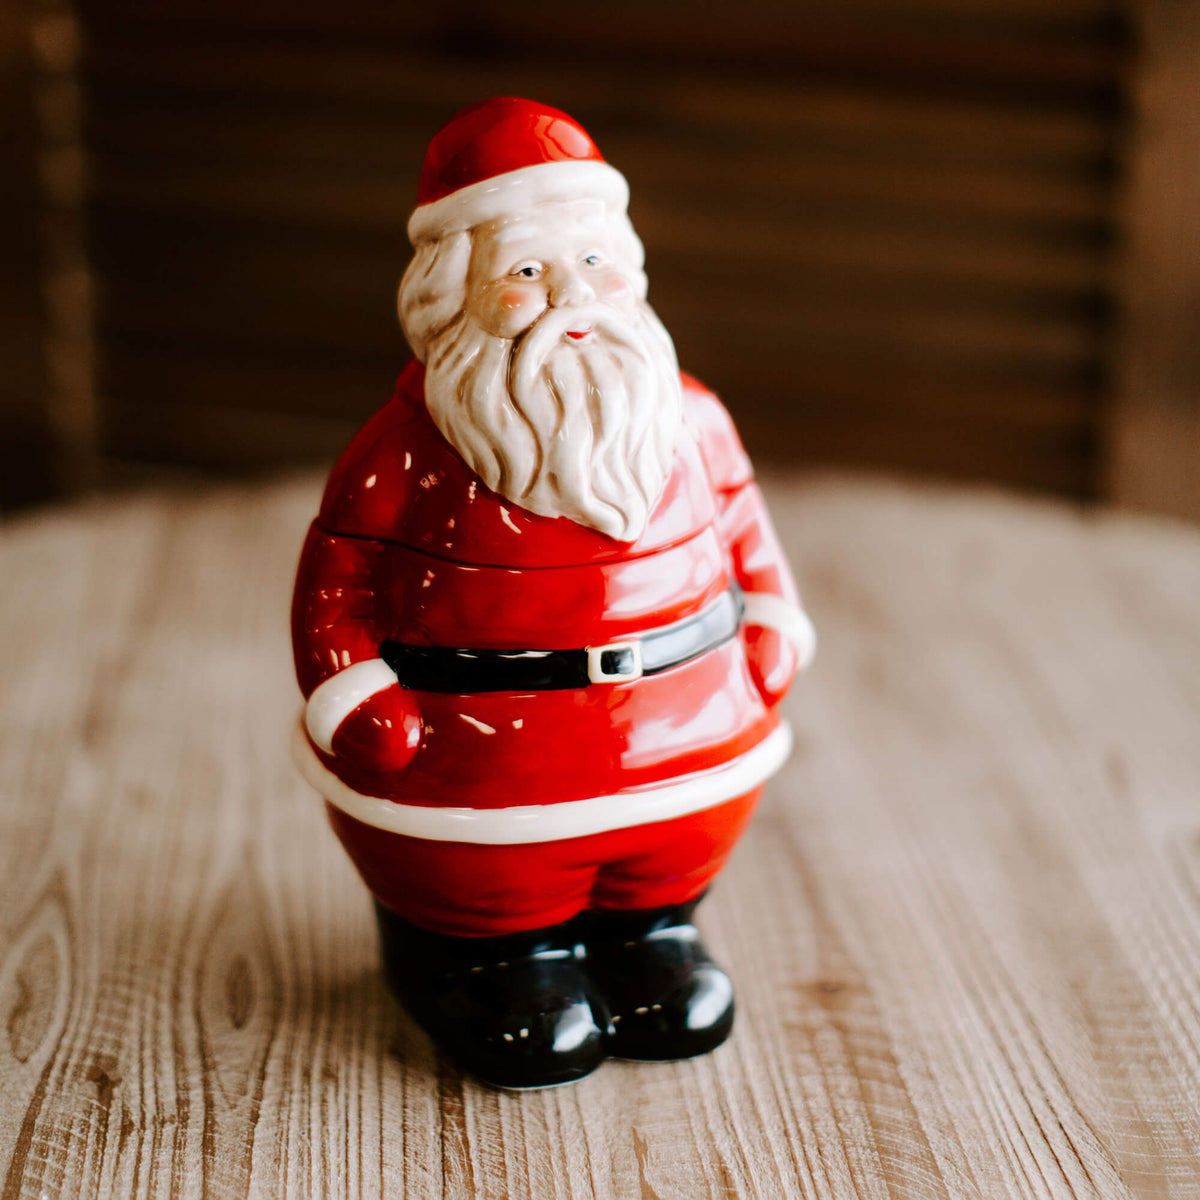 11 and half inch tall stoneware Santa Claus cookie jar in red, black and white, resting on a tabletop